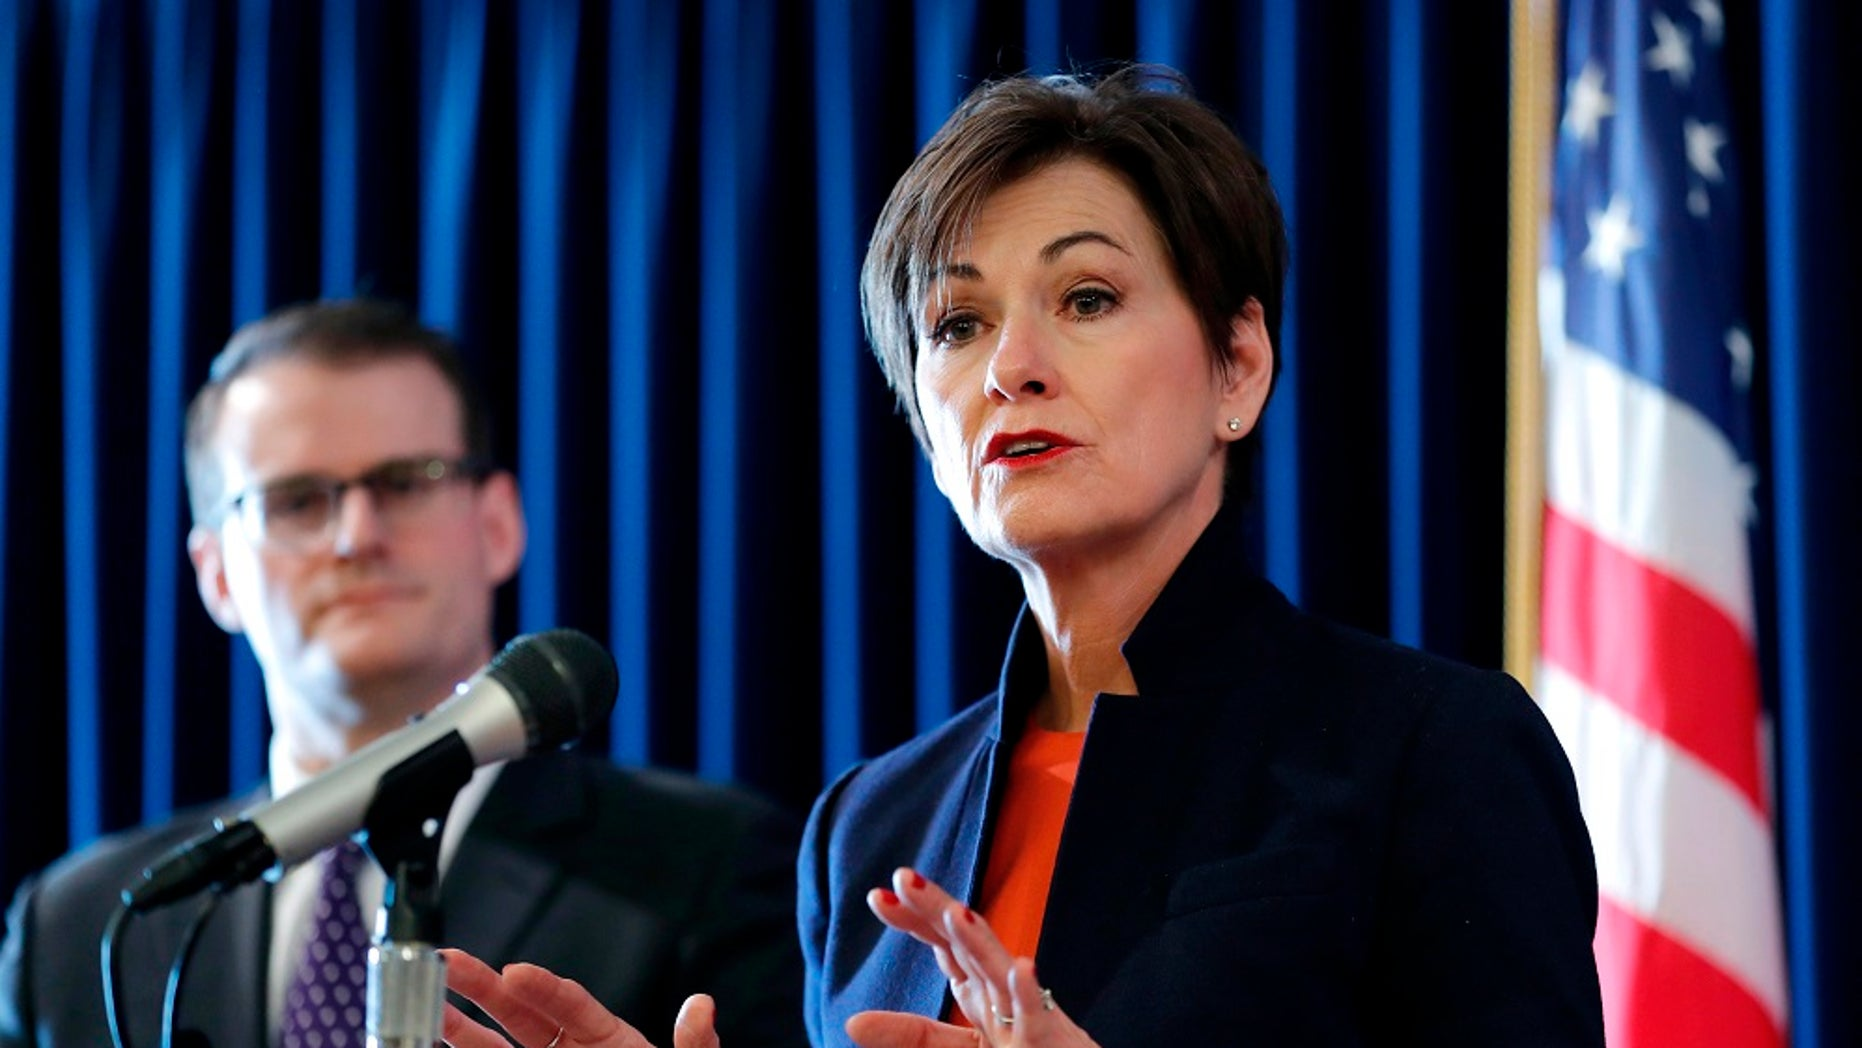 Iowa Gov. Kim Reynolds has not said whether or not she plans to sign the bill into law.